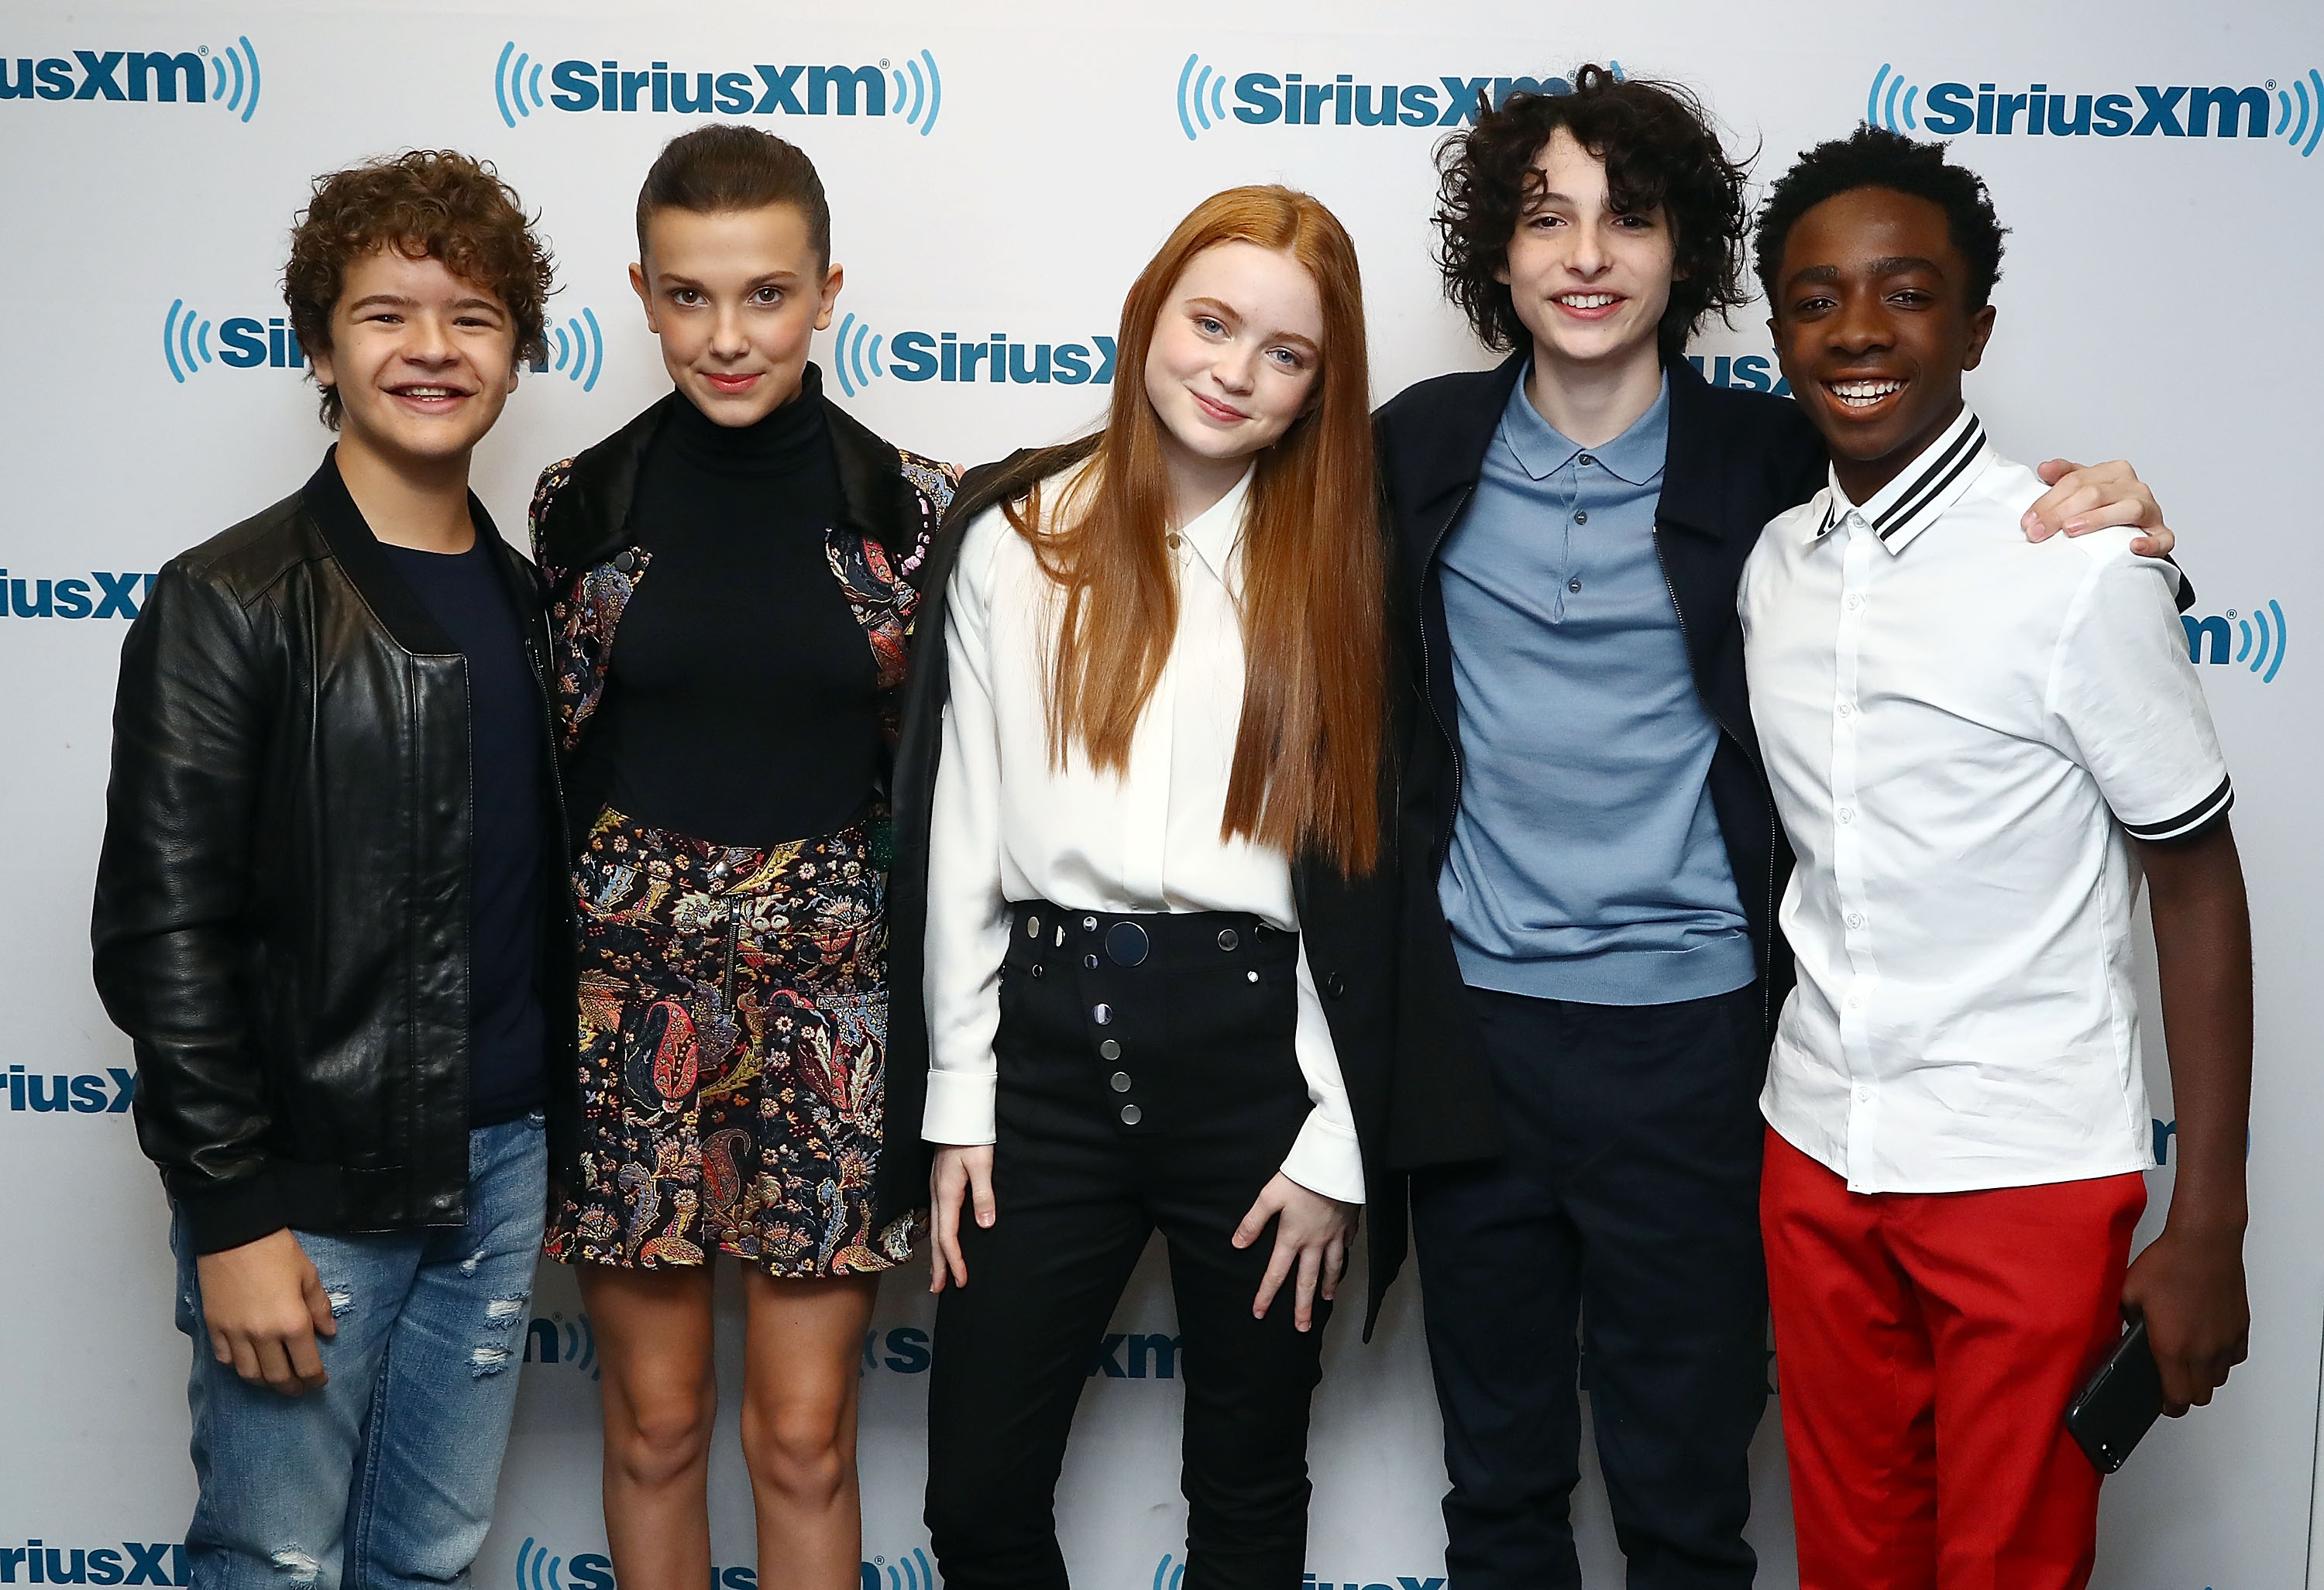 (L-R) Actors Gaten Matarazzo, Millie Bobby Brown, Sadie Sink, Finn Wolfhard and Caleb McLaughlin attend SiriusXM's 'Town Hall' cast of Stranger Things on SiriusXM's Entertainment Weekly Radio on November 1, 2017 in New York City.